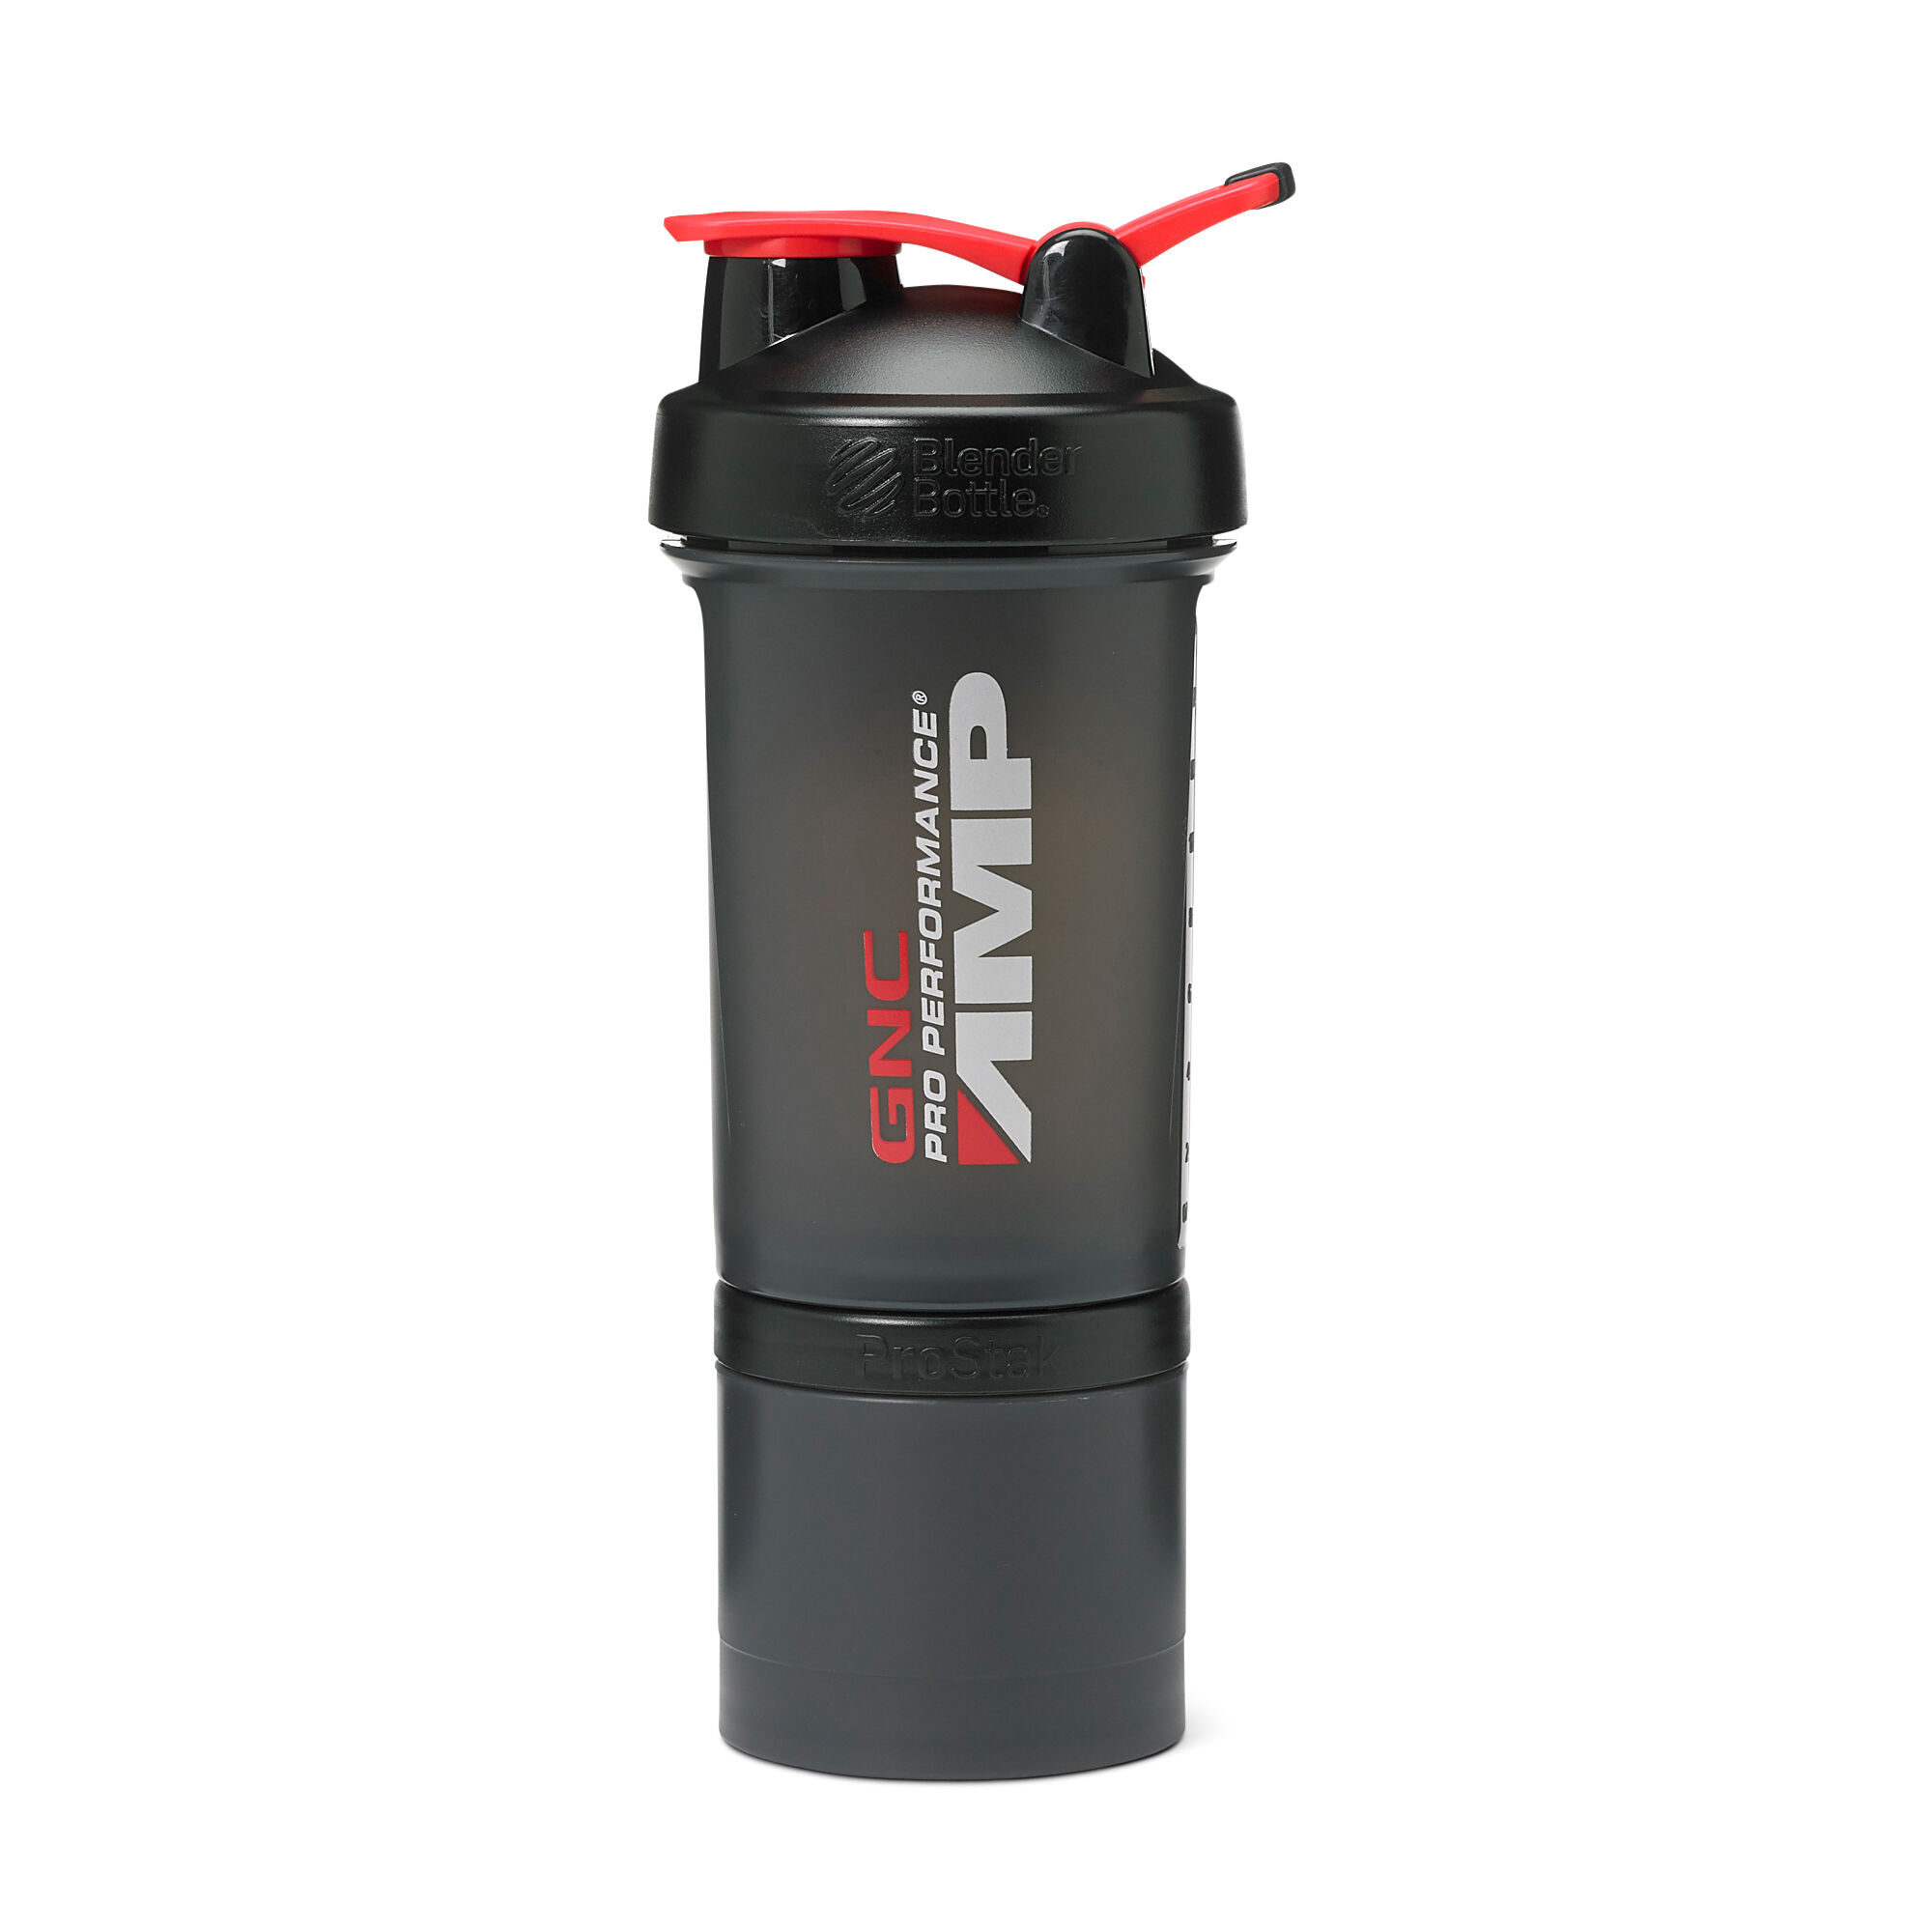 Blender Bottle Prostakg 1 Item Gnc Pro PerformanceAmp Mixers Shakers And Bottles